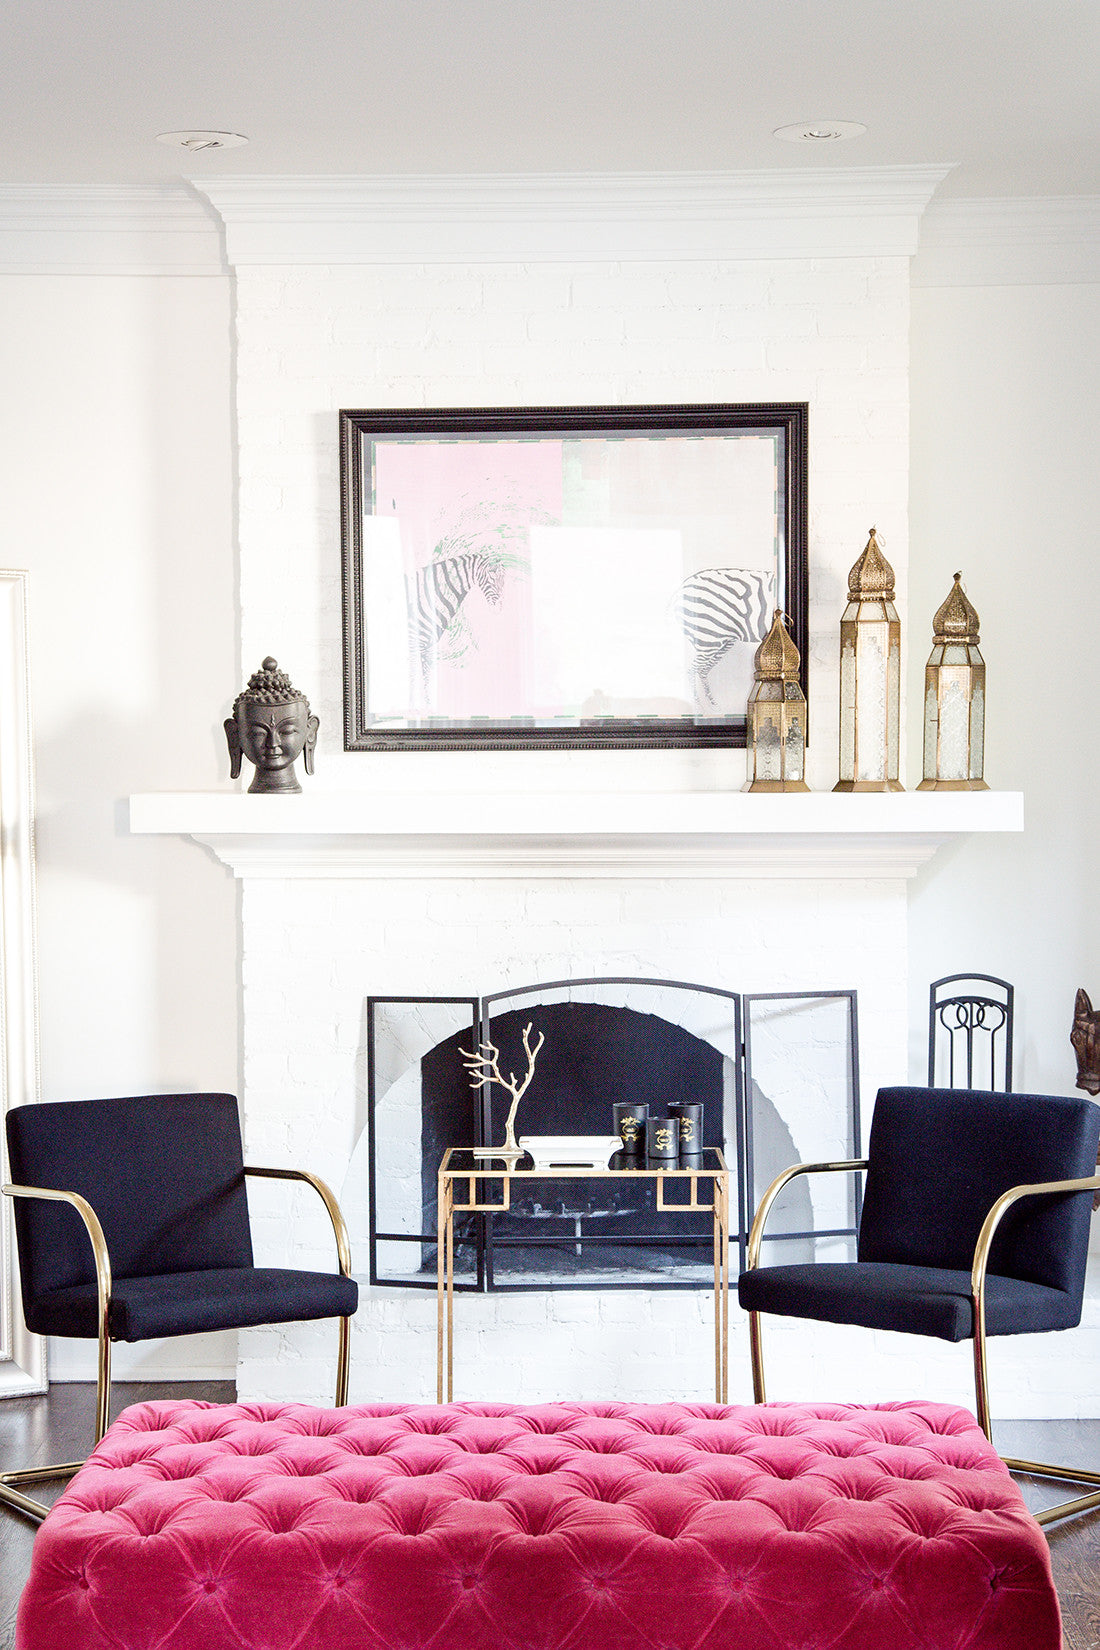 Black Rooster Decor In Your Space - Roxy Earle Real Housewives of Toronto